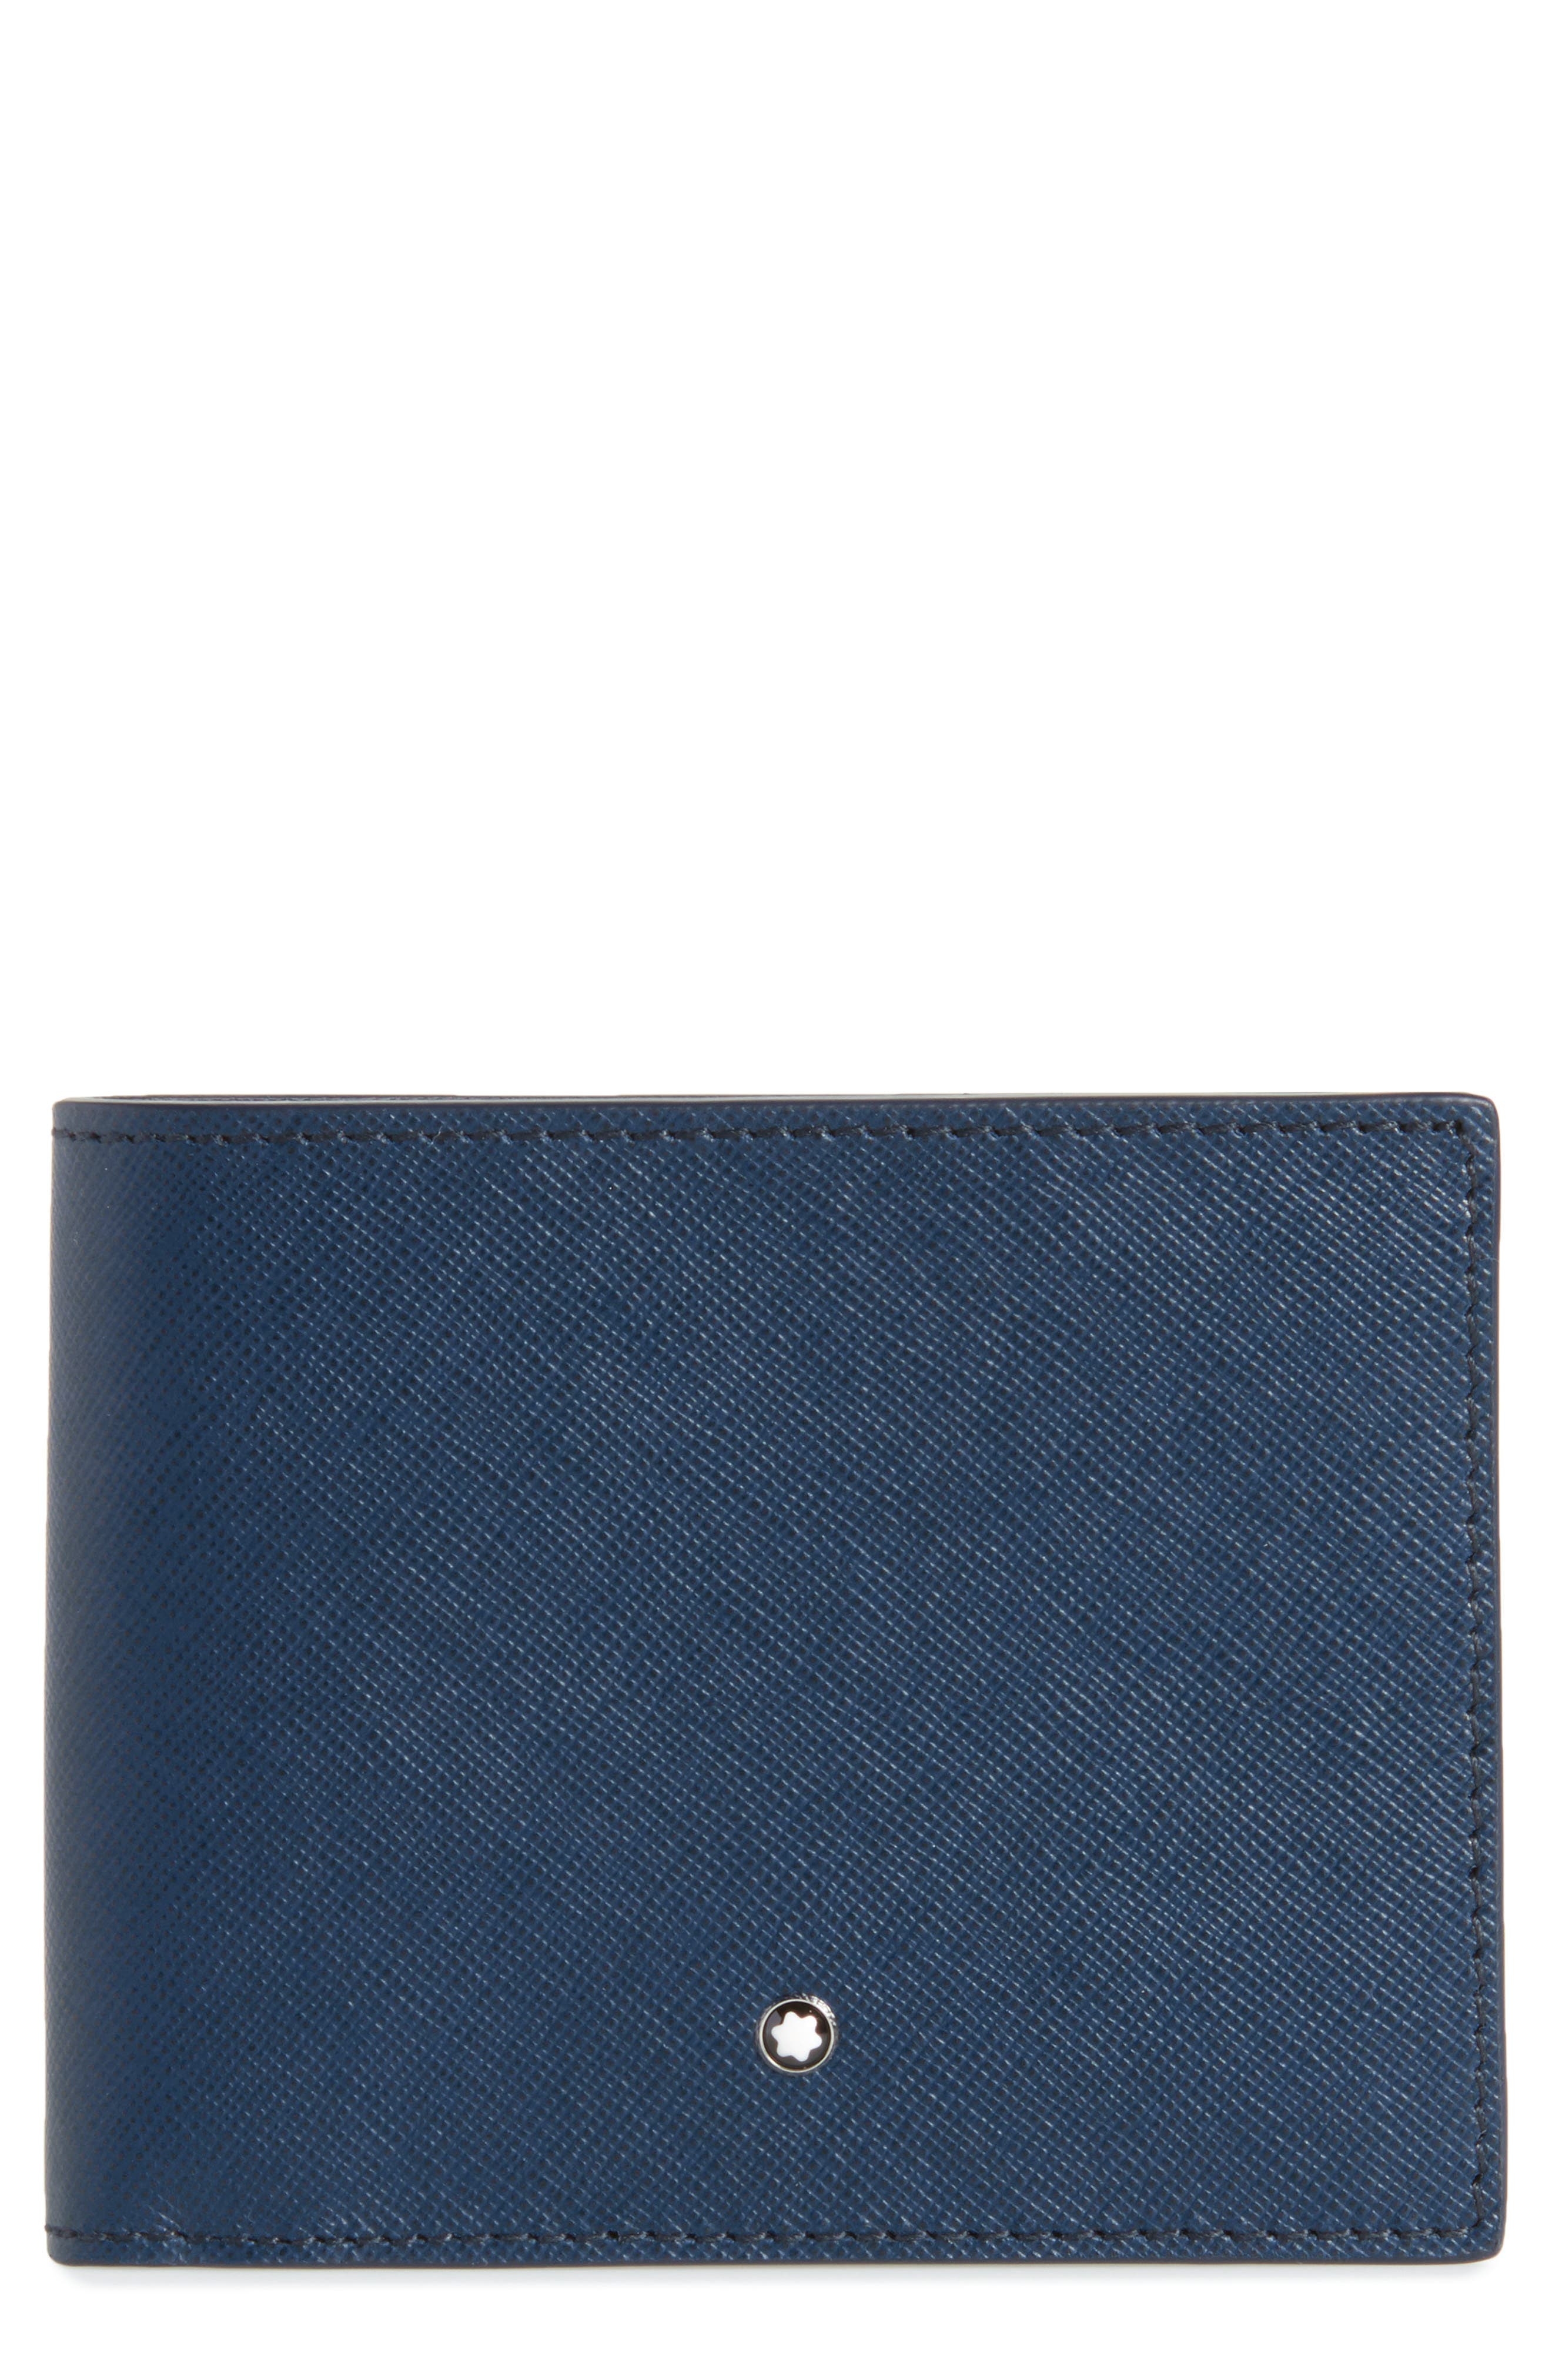 Alternate Image 1 Selected - MONTBLANC Sartorial Leather Bifold Wallet